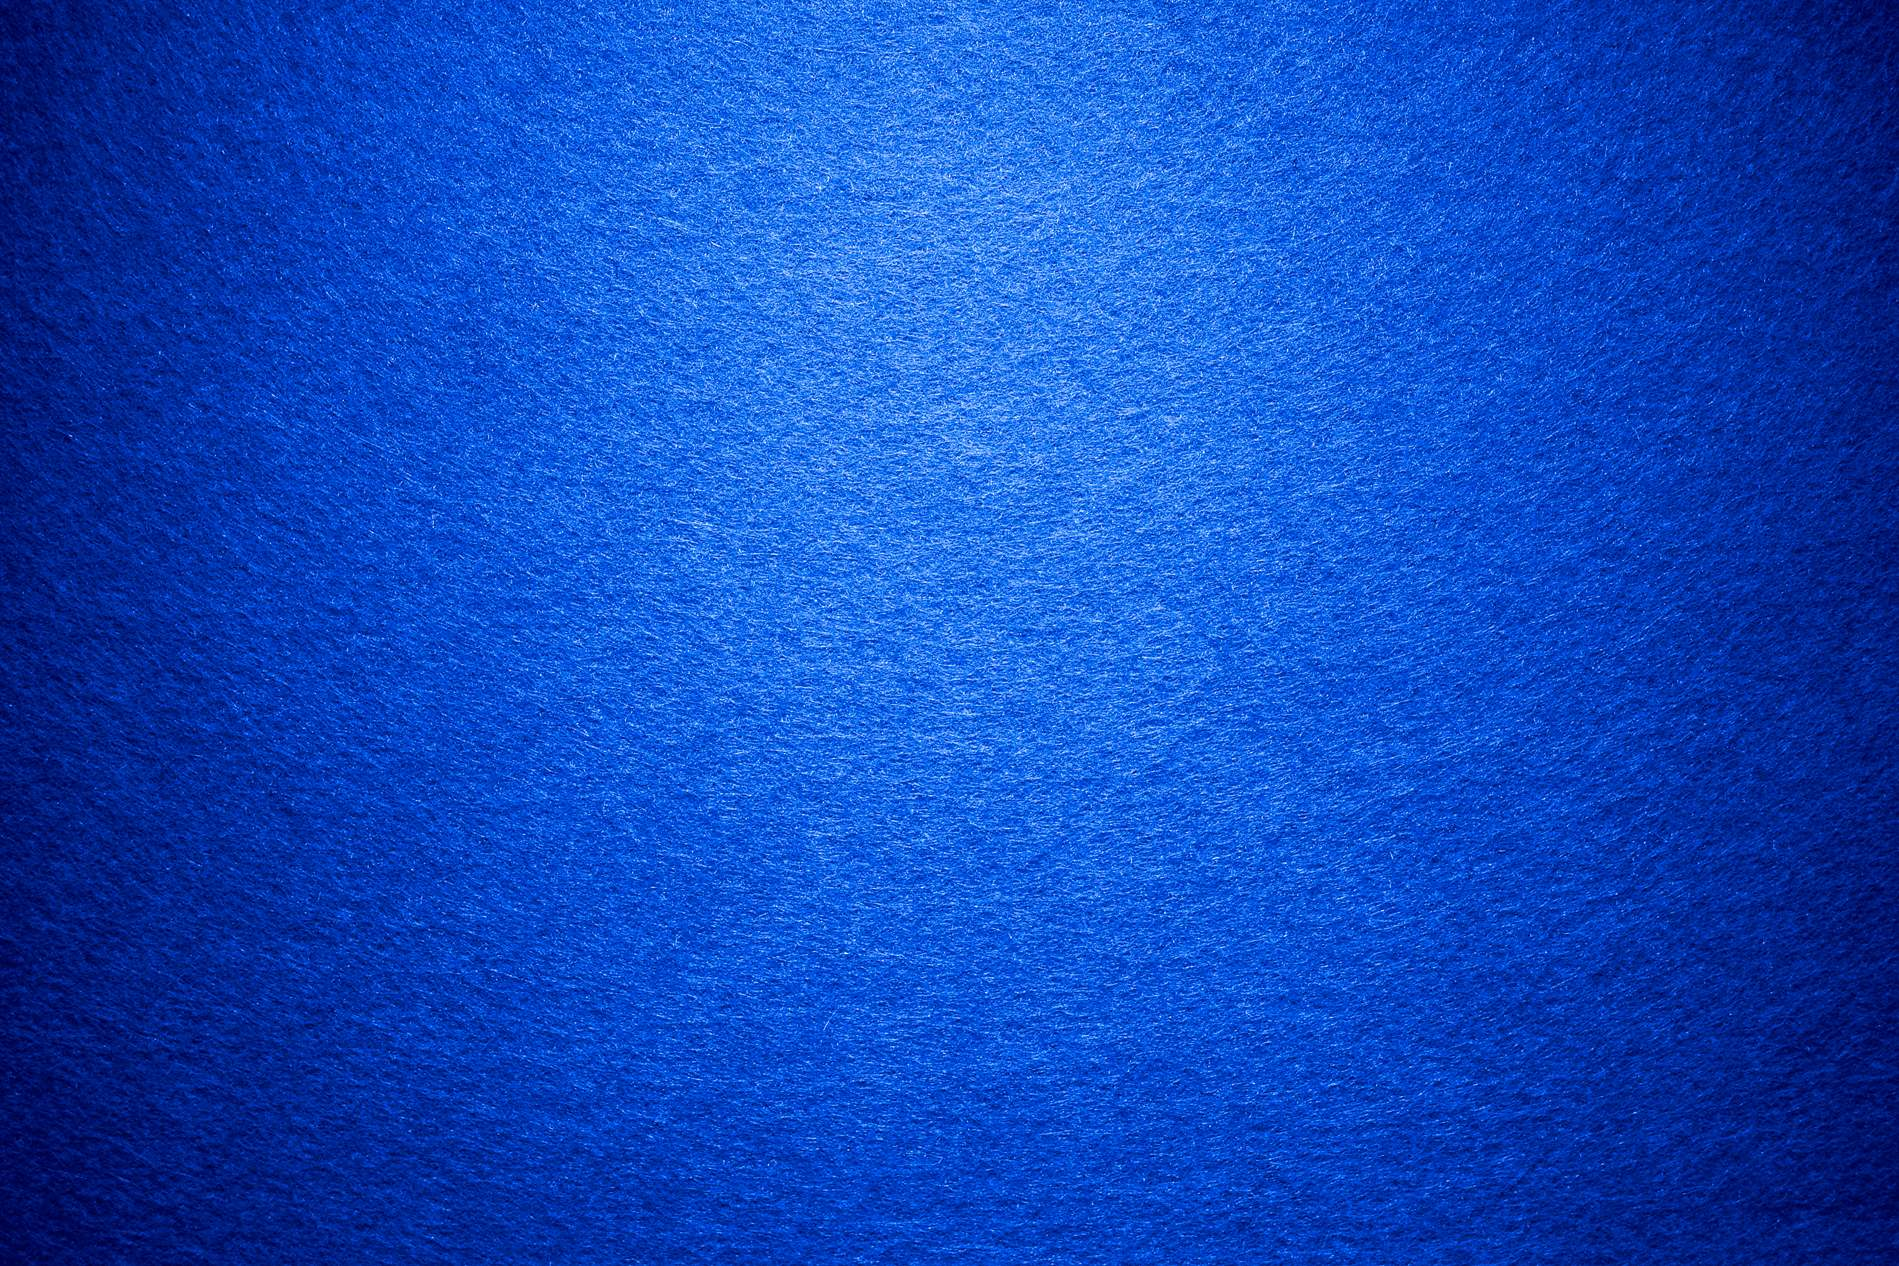 Fabric Texture Blue Background - PhotoHDX